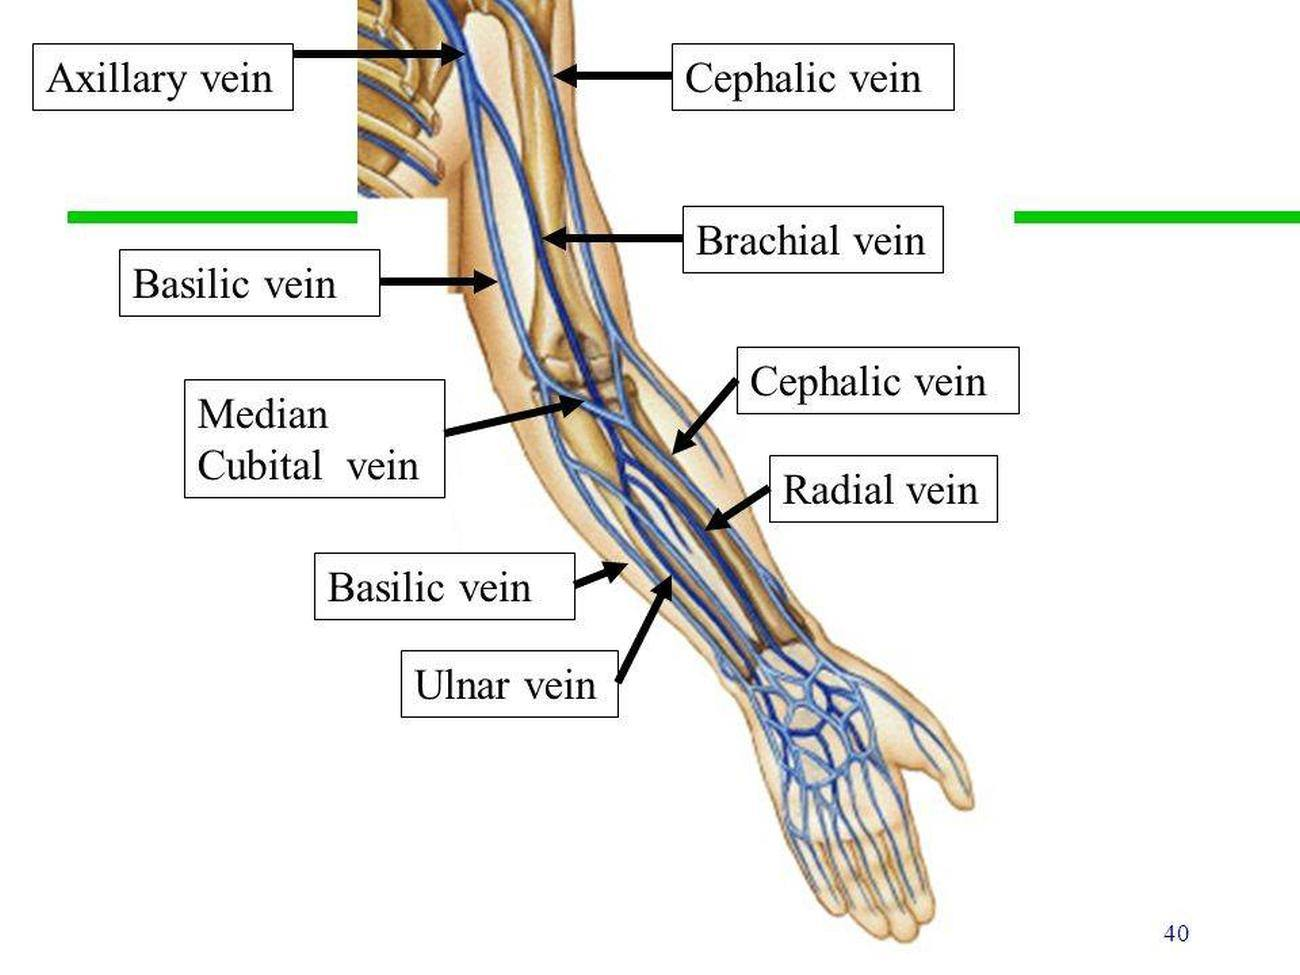 antecubital fossa diagram wire for light switch and outlet pictures of brachial veinhealthiack